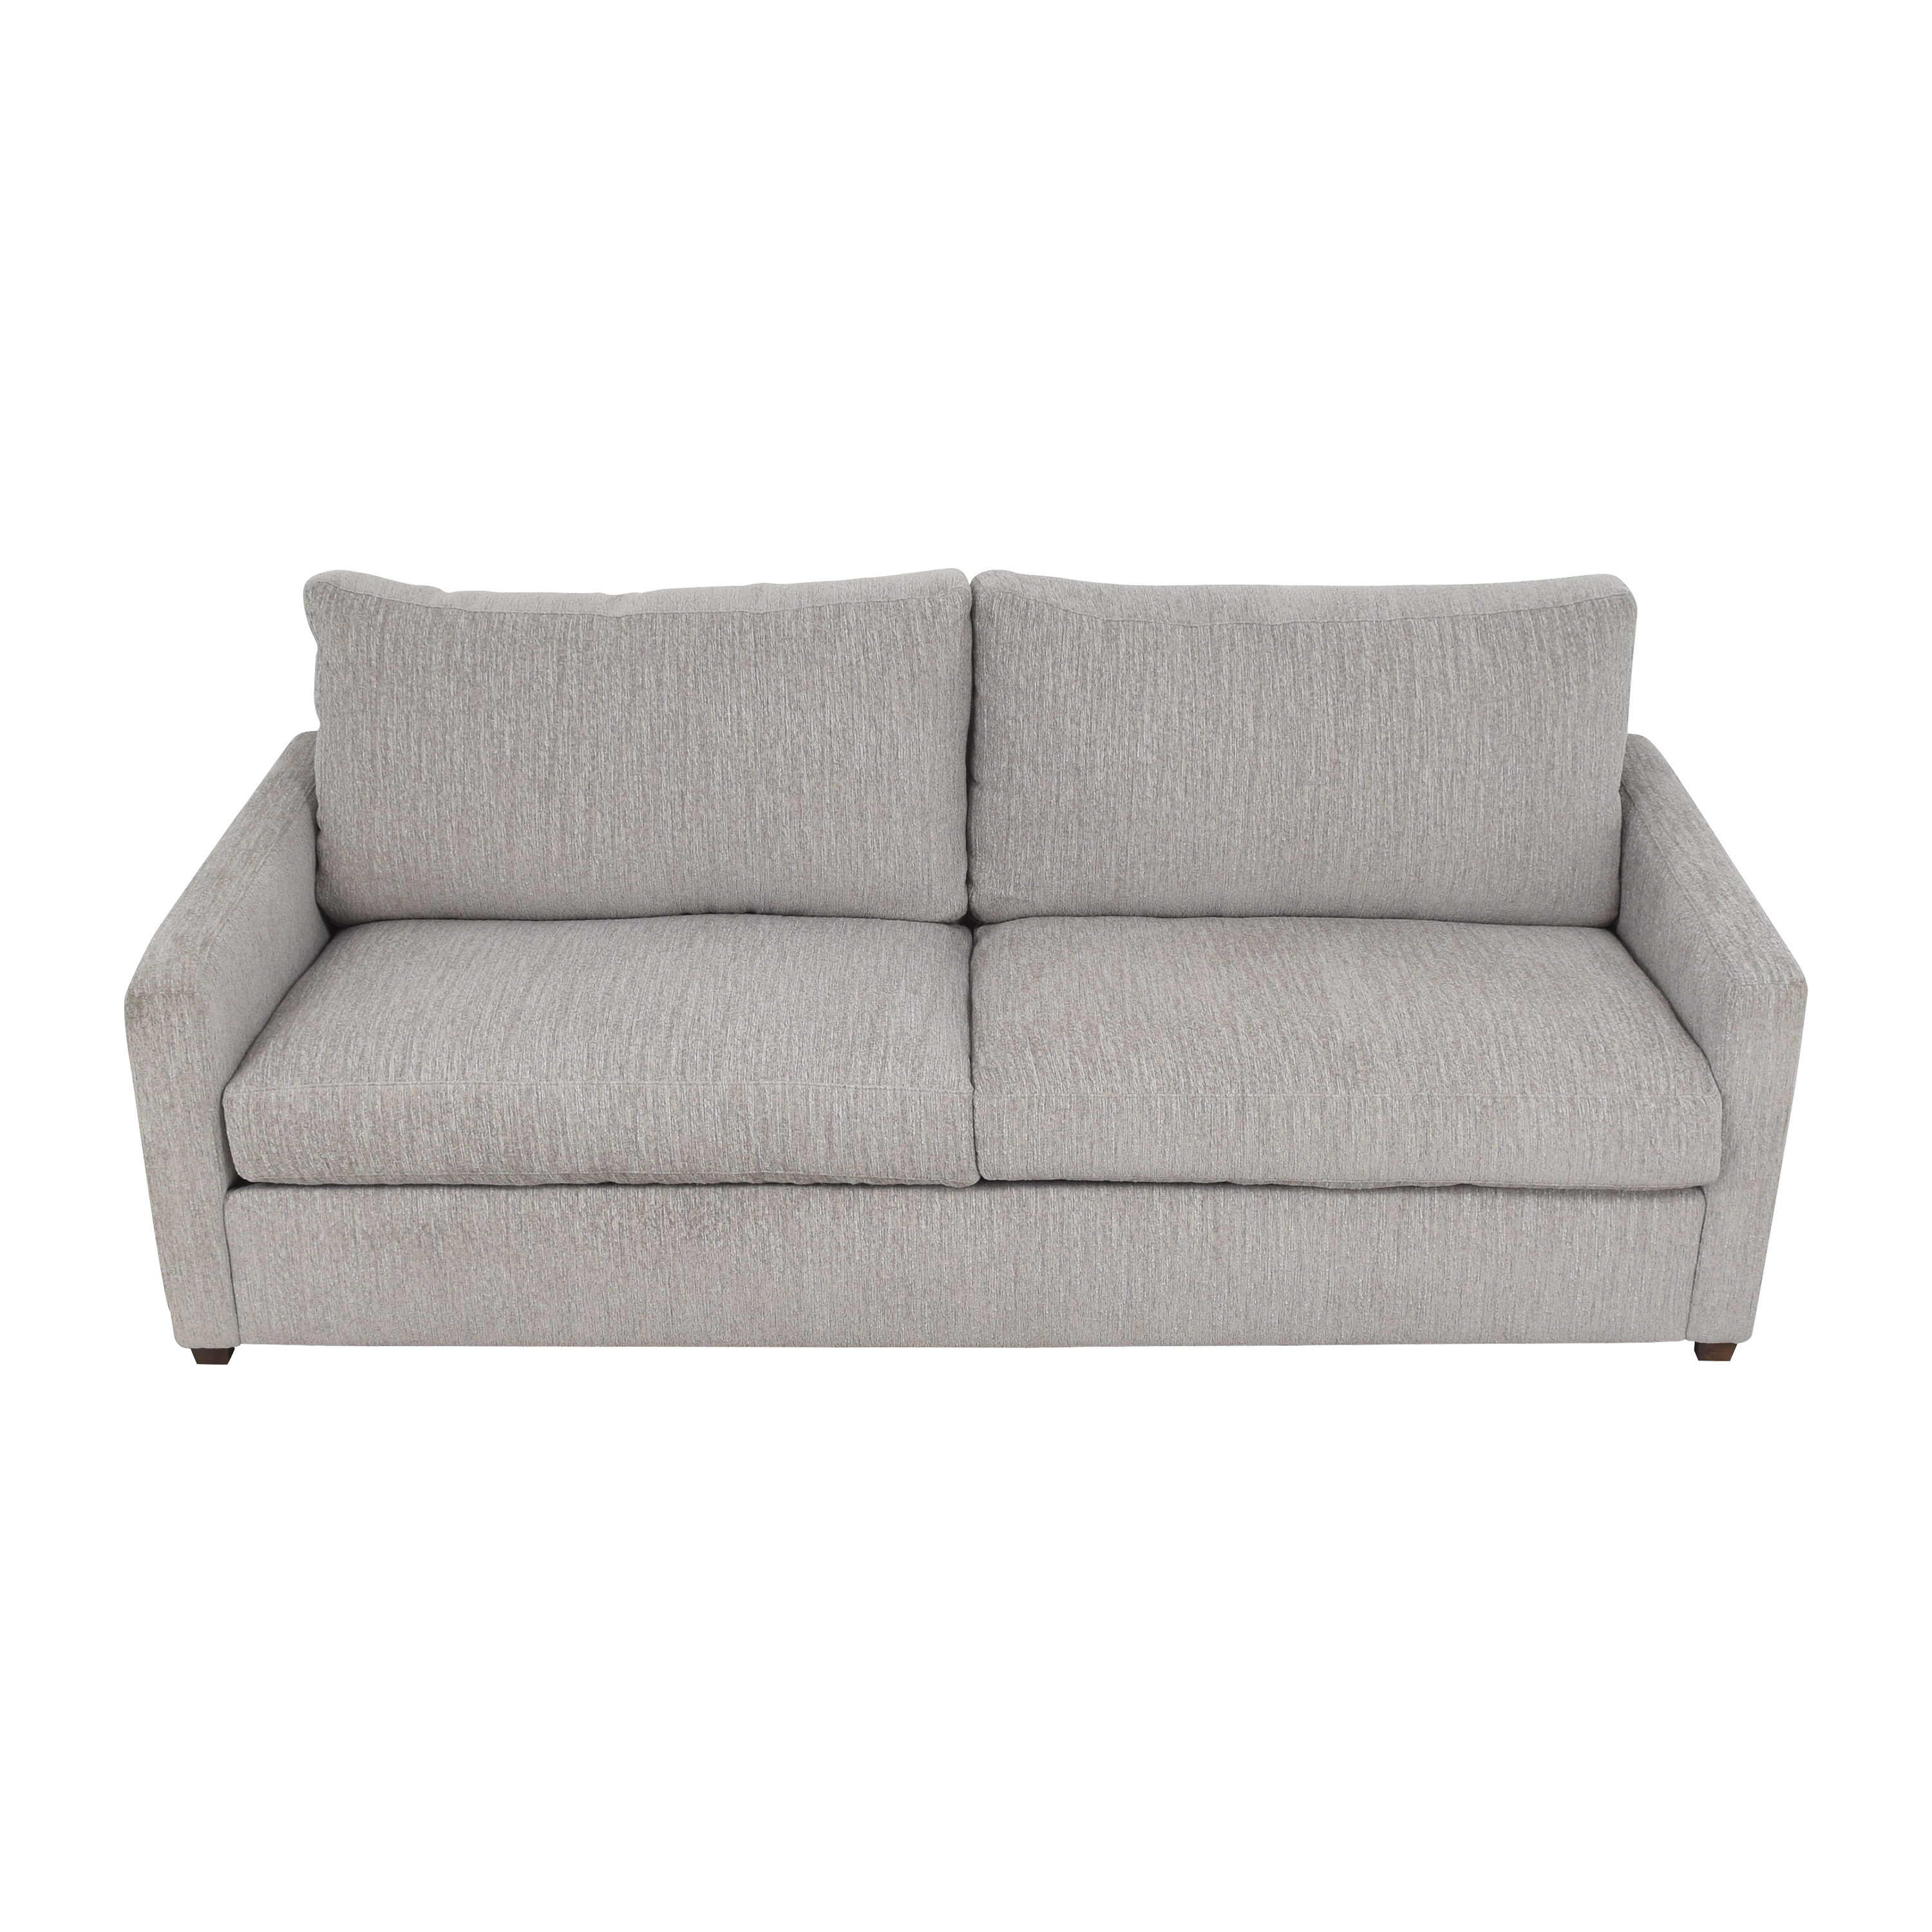 BenchMade Modern BenchMade Modern Couch Potato Lite Sofa used